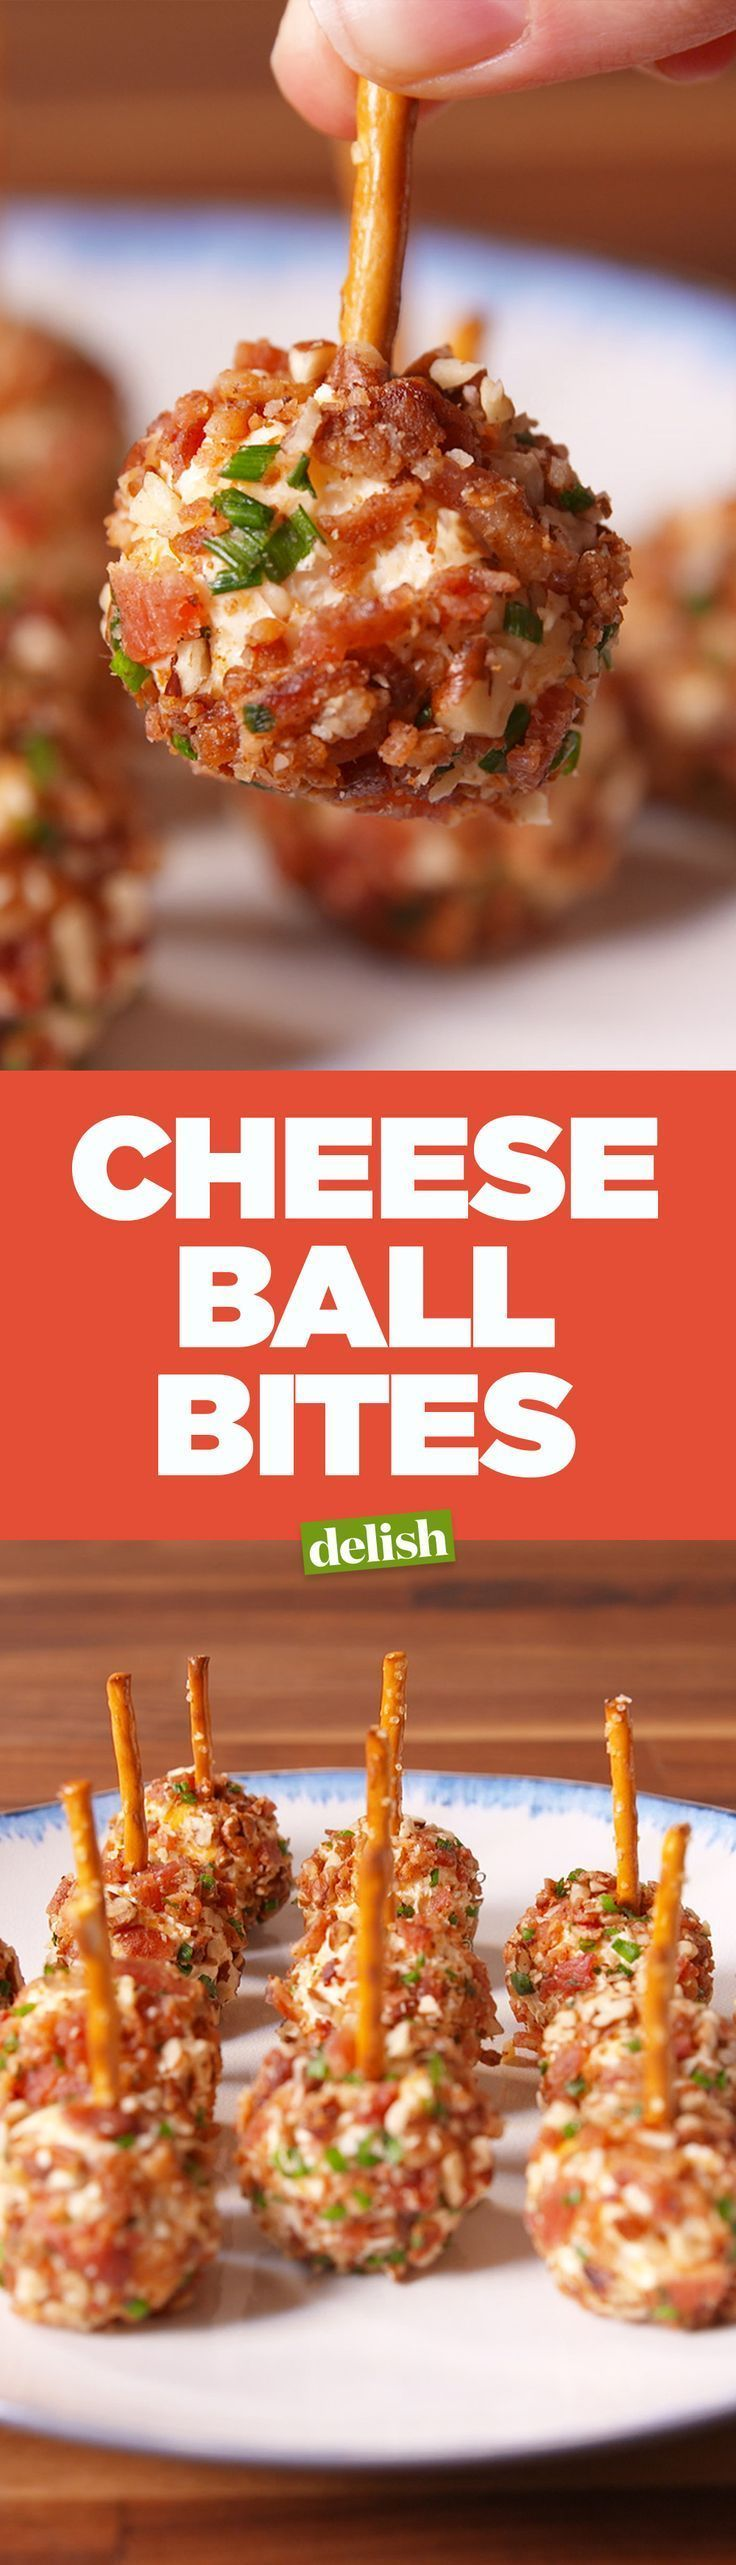 DIY Party Food : These cheese ball bites > a boring cheese platter. Get the recipe on Delish.c...  https://diypick.com/food-recipes/diy-party-food-these-cheese-ball-bites-a-boring-cheese-platter-get-the-recipe-on-delish-c/